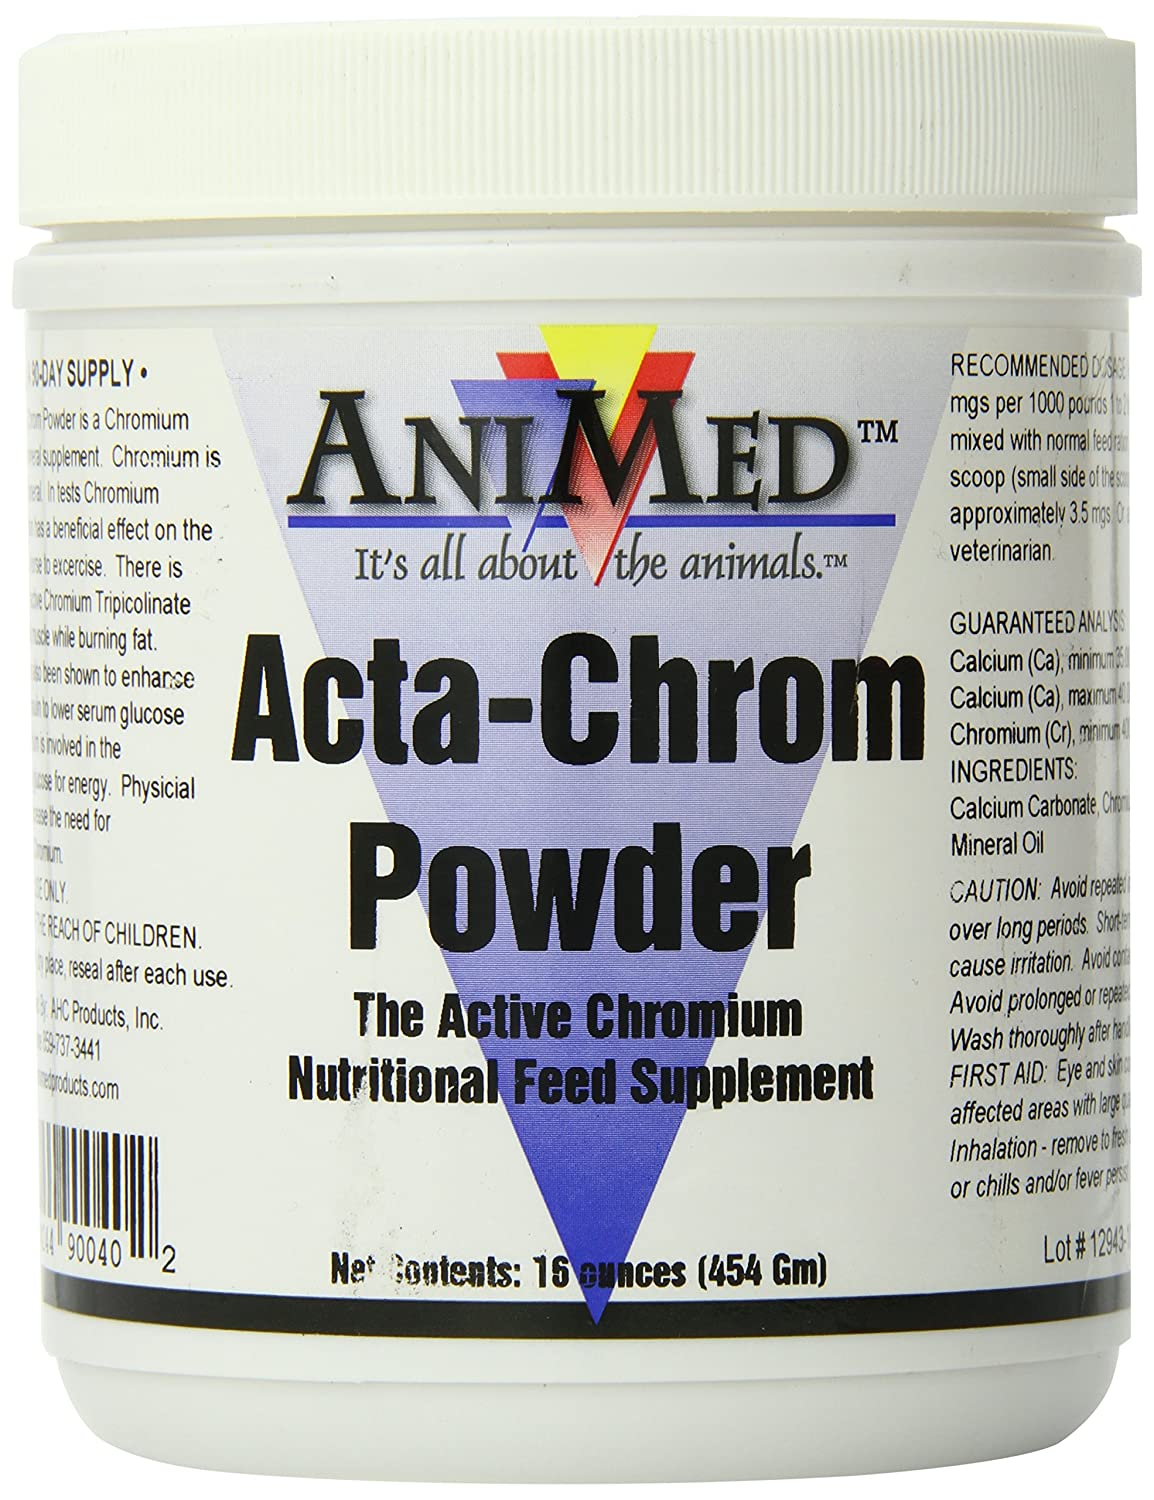 AniMed Acta-Chrom Powder Supplement for Horses 16-Ounce